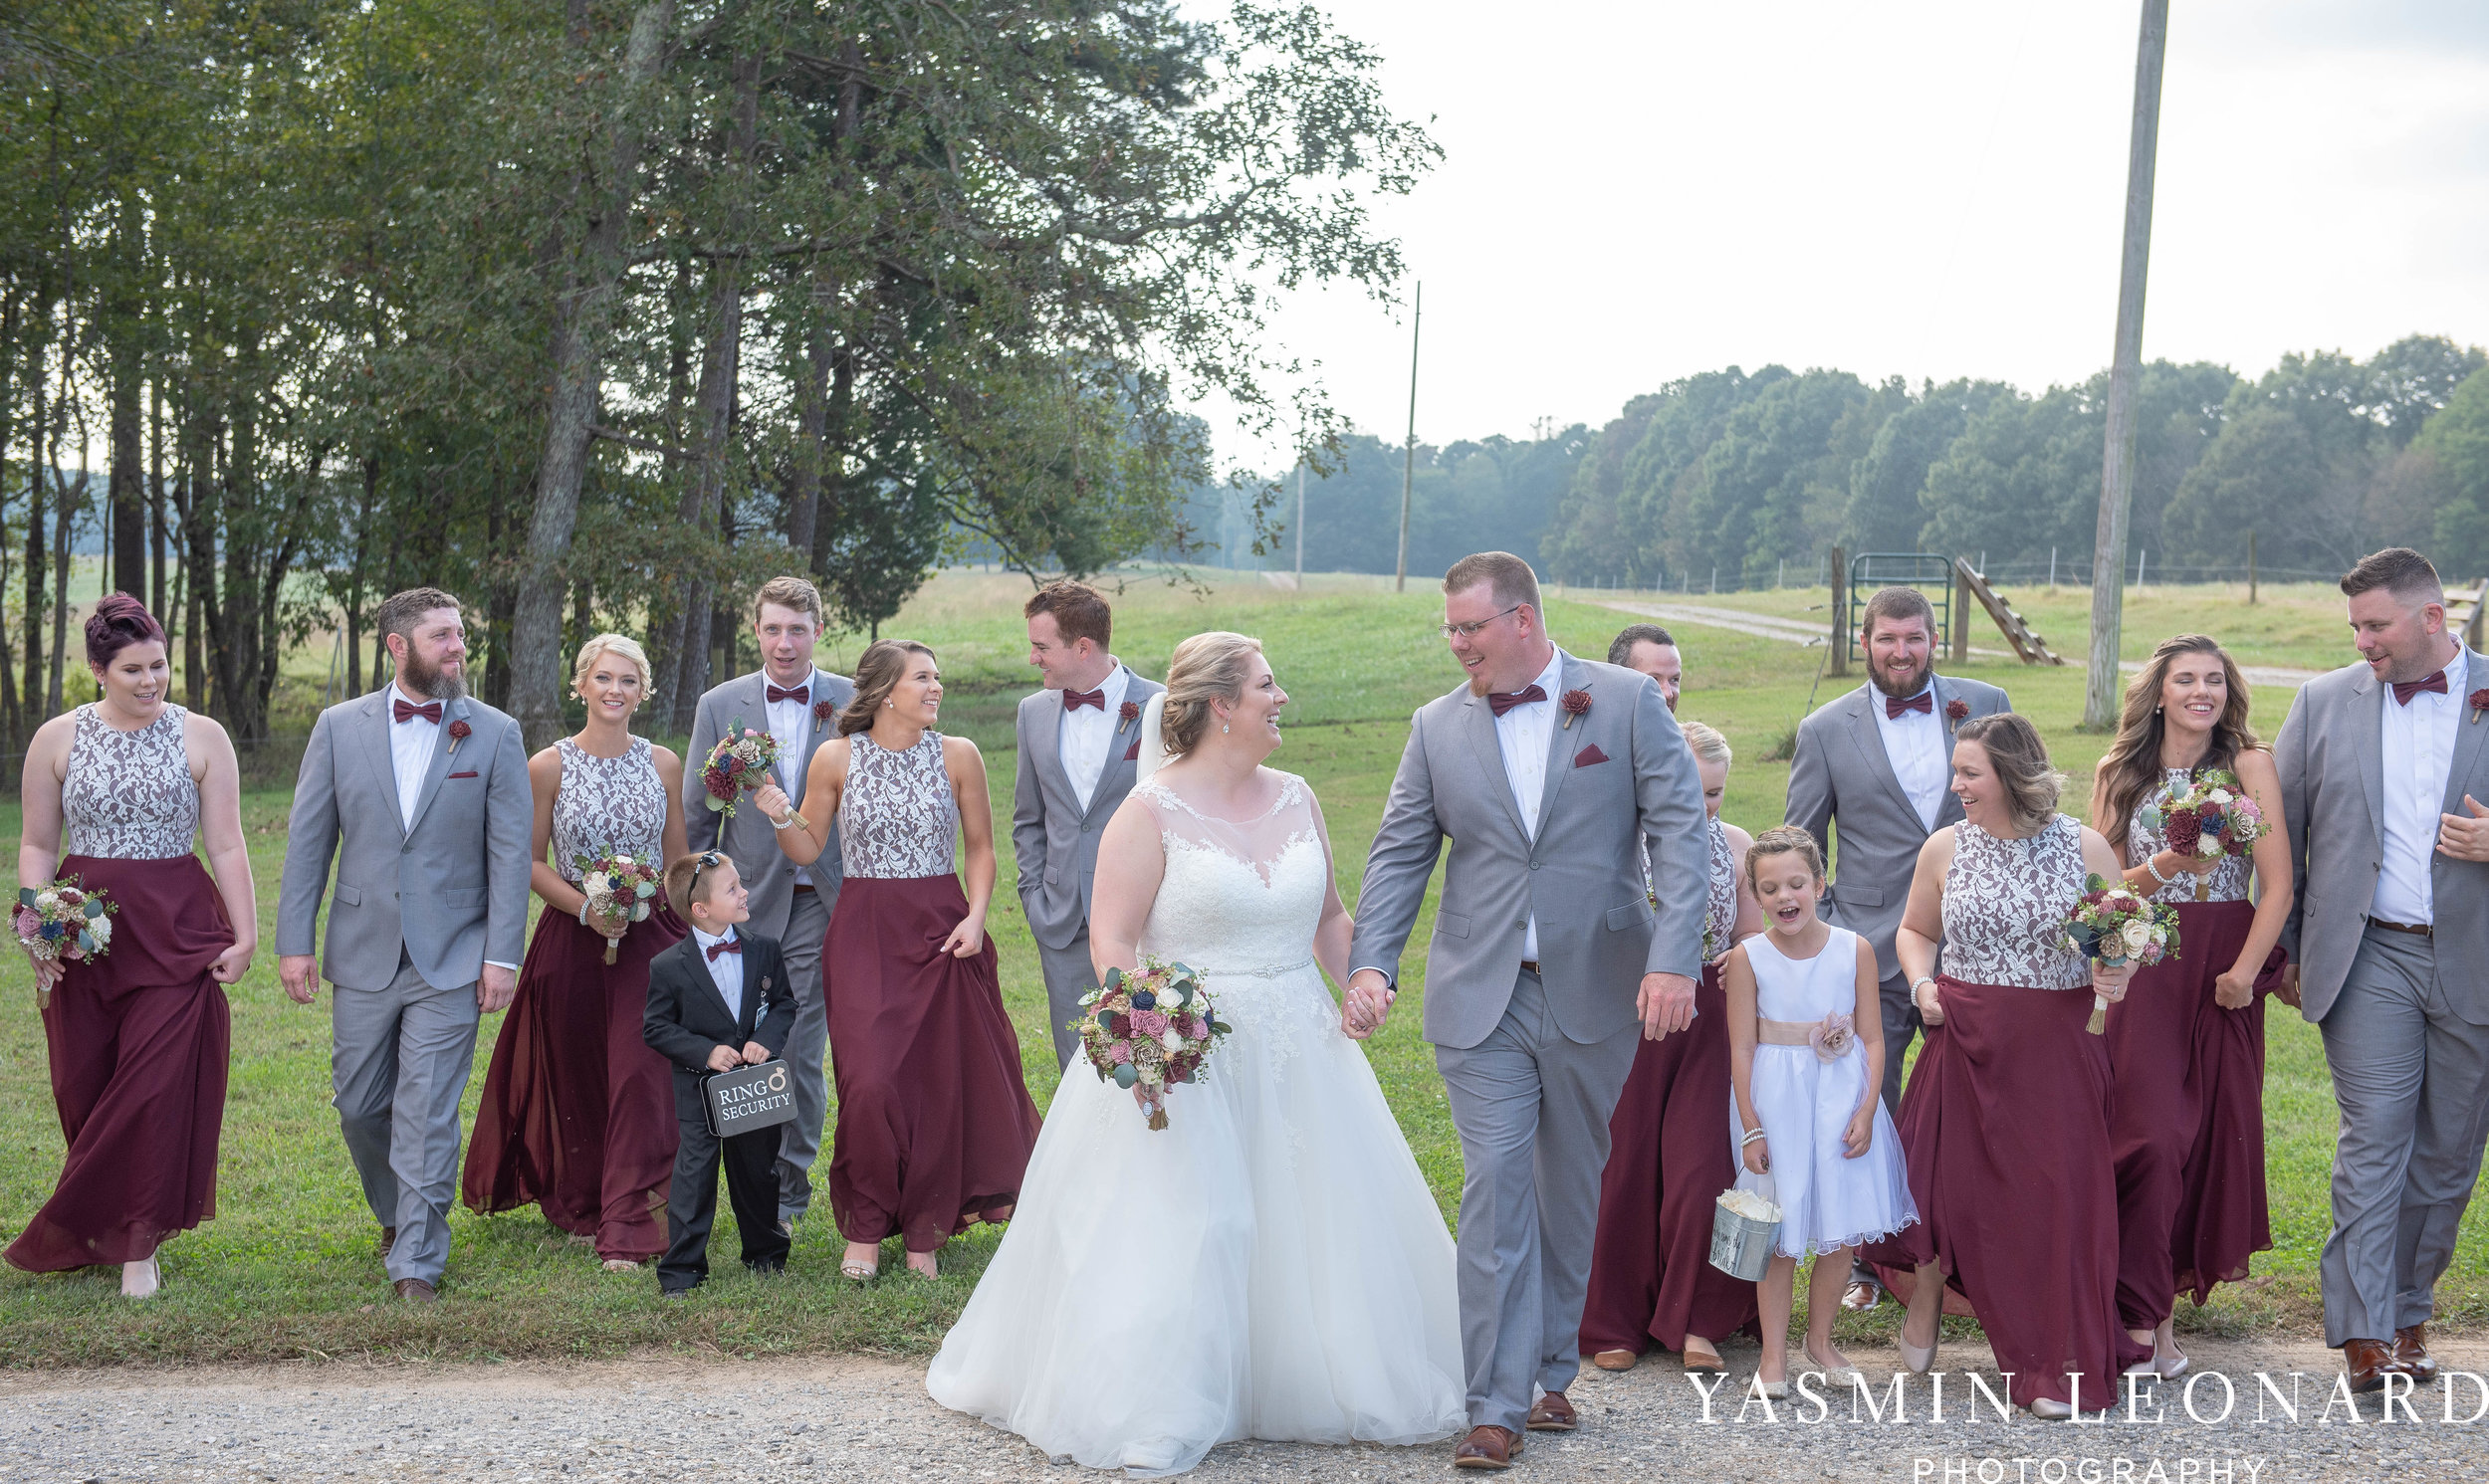 Danner Farms - NC Wedding Venues - NC Barns - Statesville NC - NC Wedding Photographer - High Point Wedding Photographer - Yasmin Leonard Photography-45.jpg